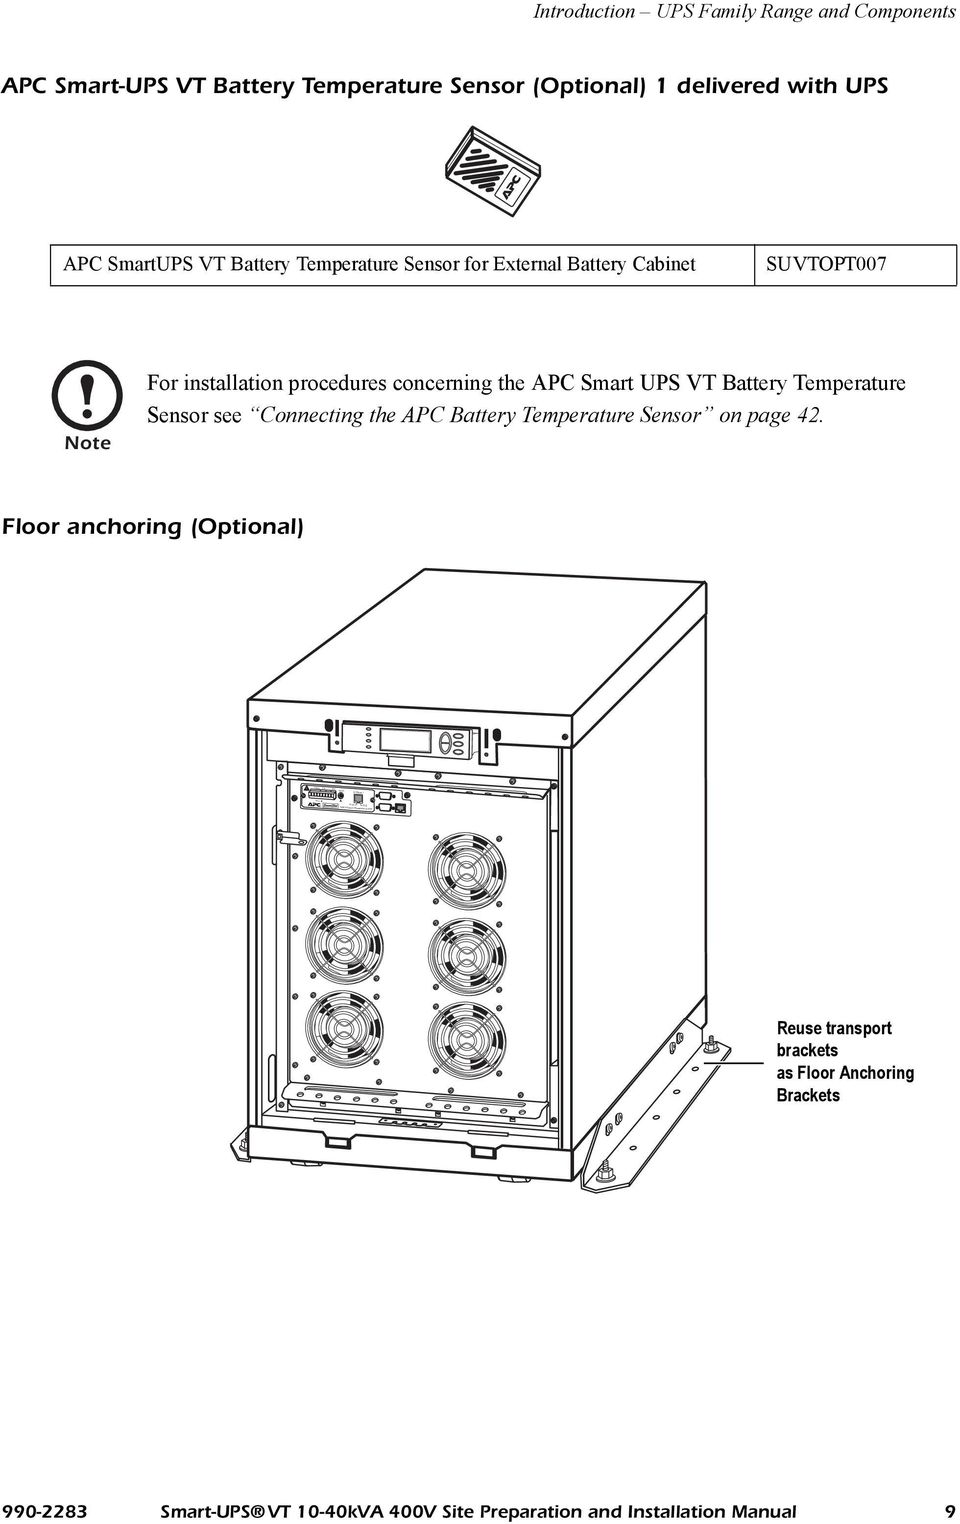 Smart Ups Vt Kva 400v Site Preparation And Installation Manual Pdf Apc 1500 Battery Wiring Diagram Procedures Concerning The Temperature Sensor See Connecting